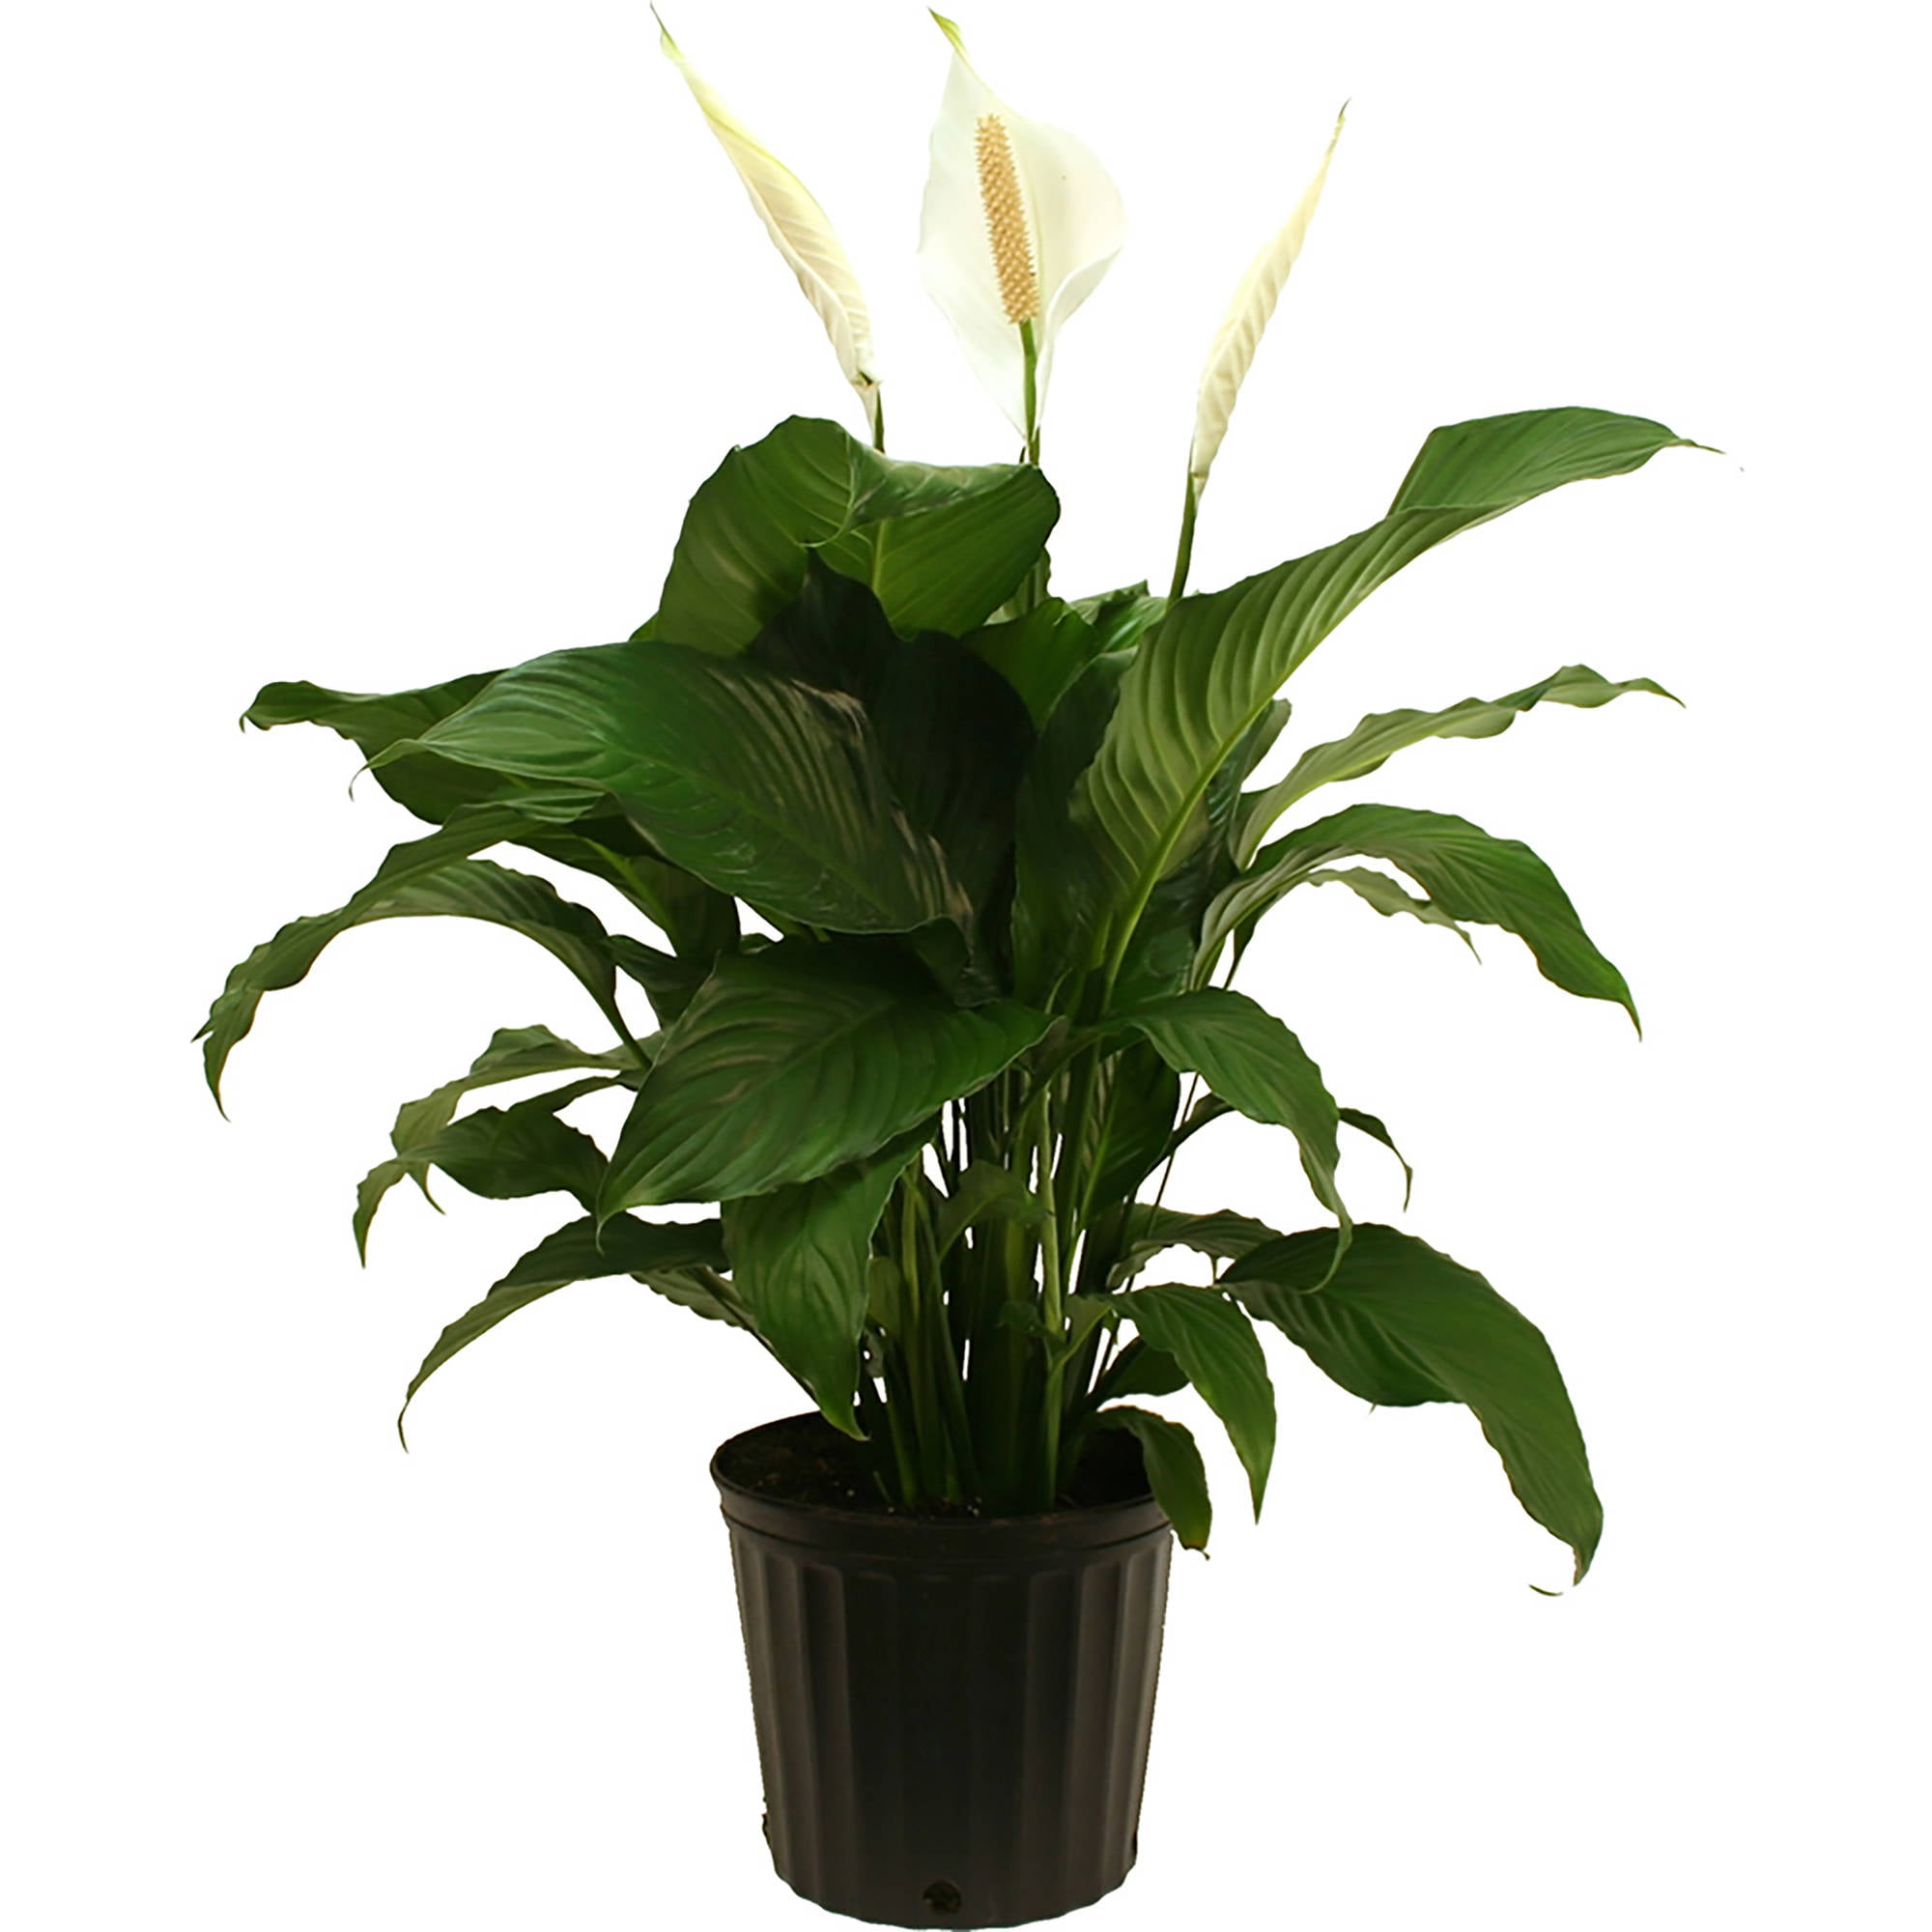 Delray Plants Spathiphyllum (Peace Lily) Sweet Pablo Easy To Grow Live on peace lily family plant, chinese evergreen house plant, droopy peace lily plant, funeral peace lily plant, peace lily potted plant, peace lily plant benefits, classic peace lily plant, black bamboo potted plant, white and green leaves house plant, croton house plant, peace plant brown leaves, dragon plant, holly house plant, zamiifolia house plant, problems with peace lily plant, weeping fig house plant, marginata house plant, artificial bamboo house plant, black gold lily plant, pineapple plant house plant,